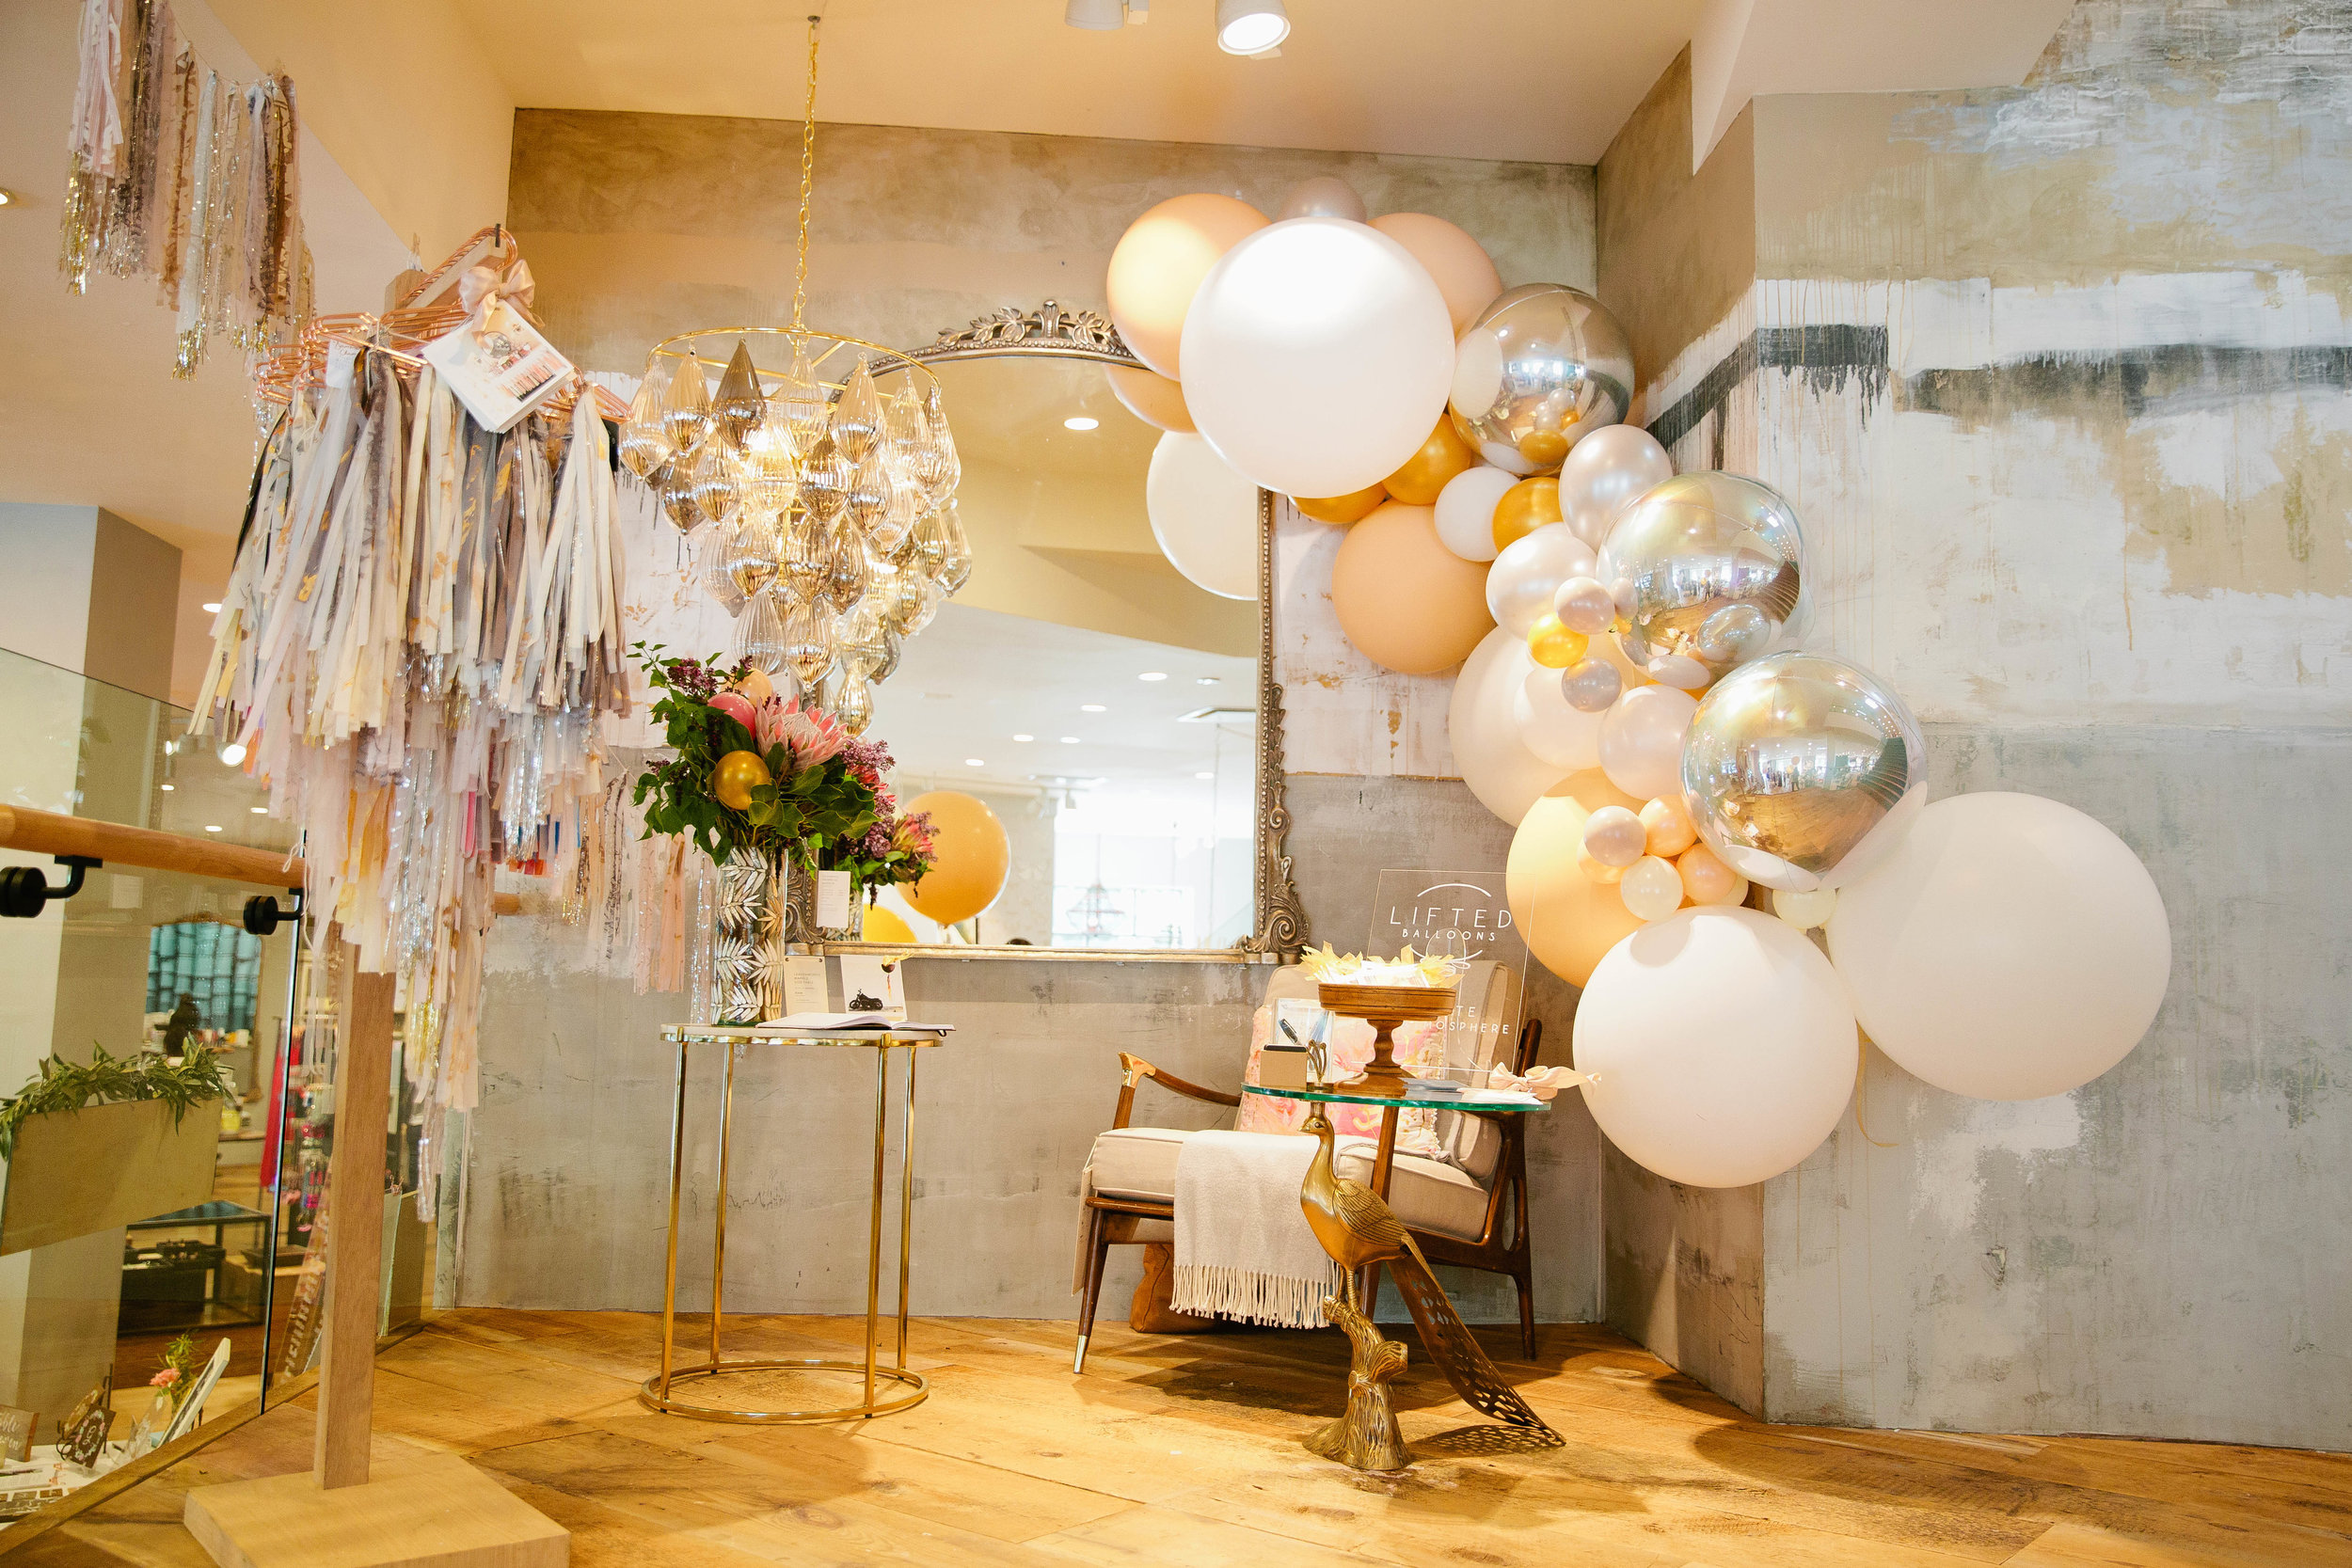 Lifted-Balloon-Waterfall-arch-wedding-Party-Decor-East-Bay-California